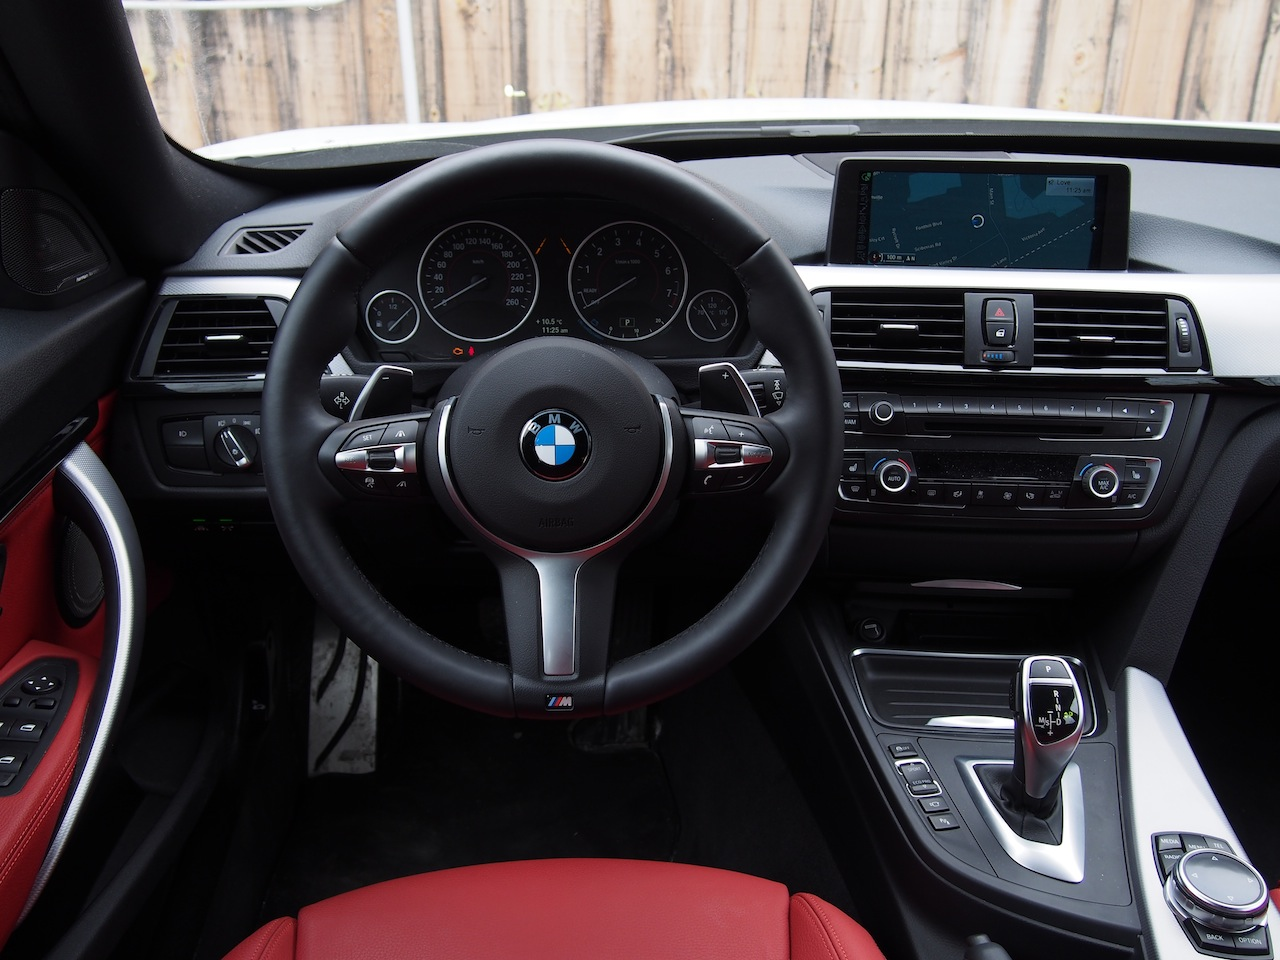 2014 bmw 335i gt white interior coral red dashboard steering wheel